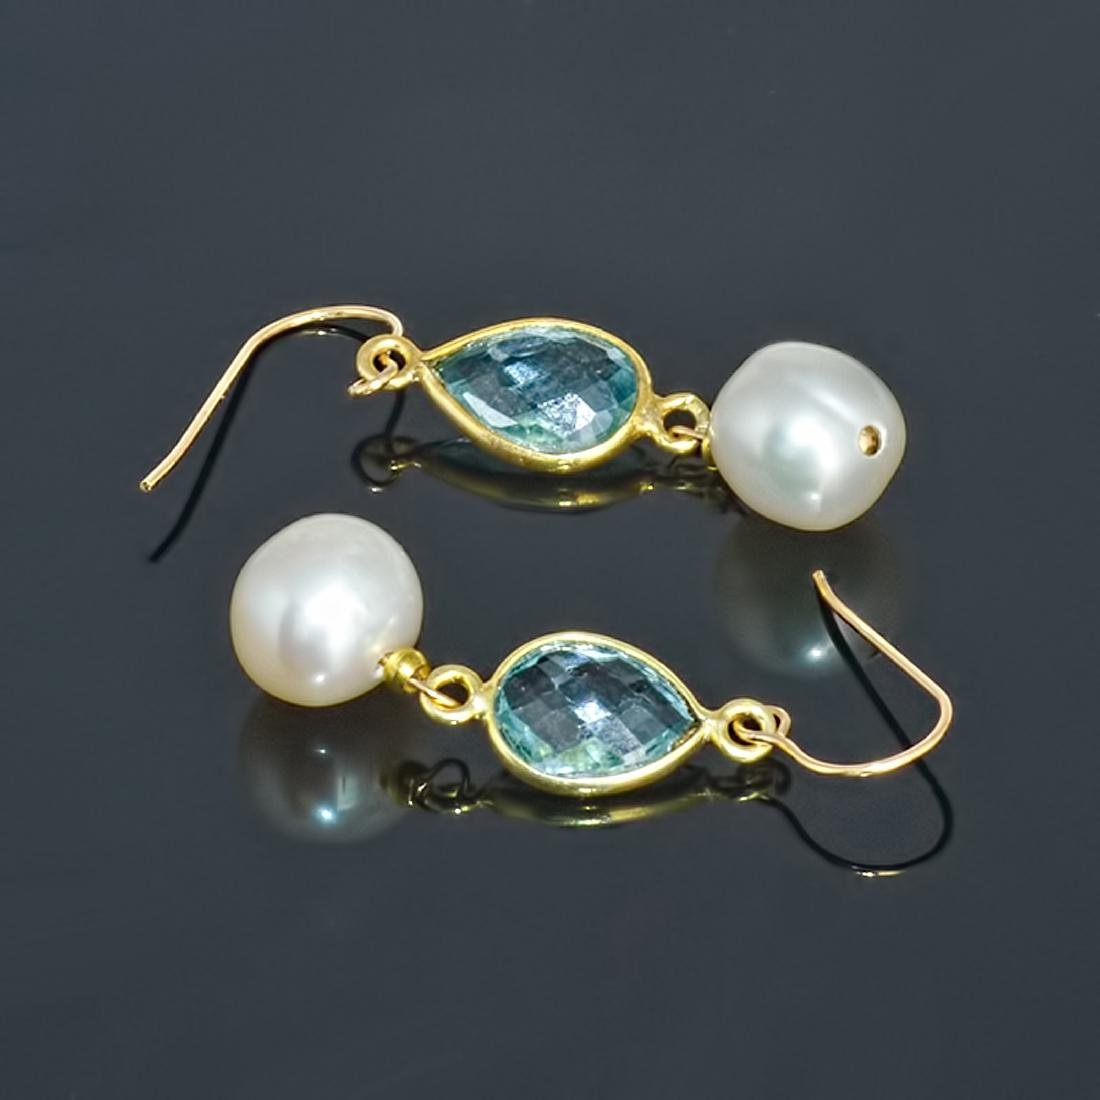 14kt Gold Earrings with Pearls and Sky Blue Topazes